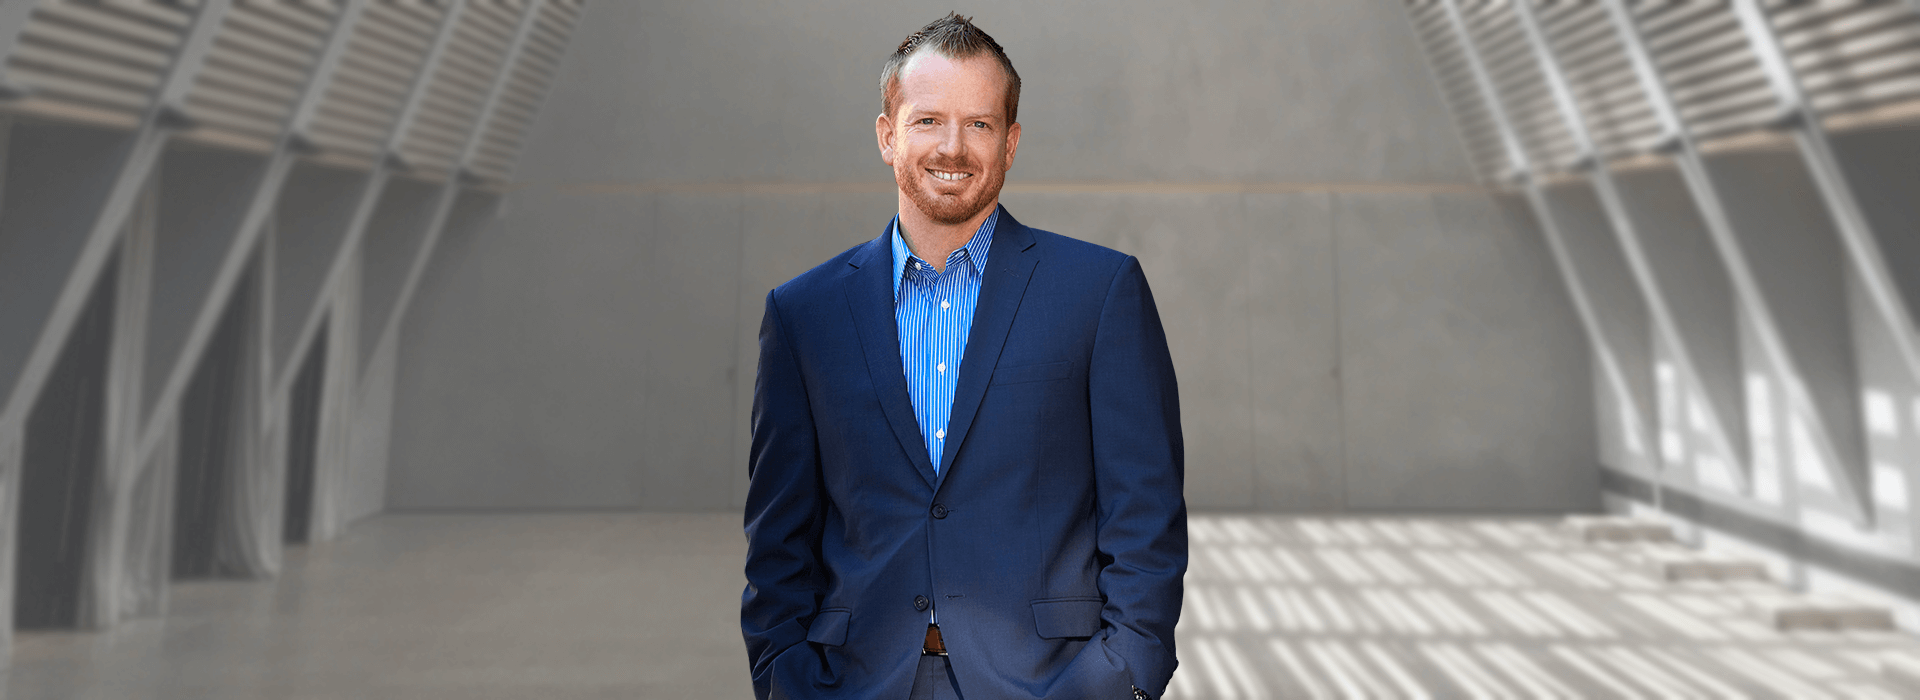 Personal branding on Twitter with Ryan Foland